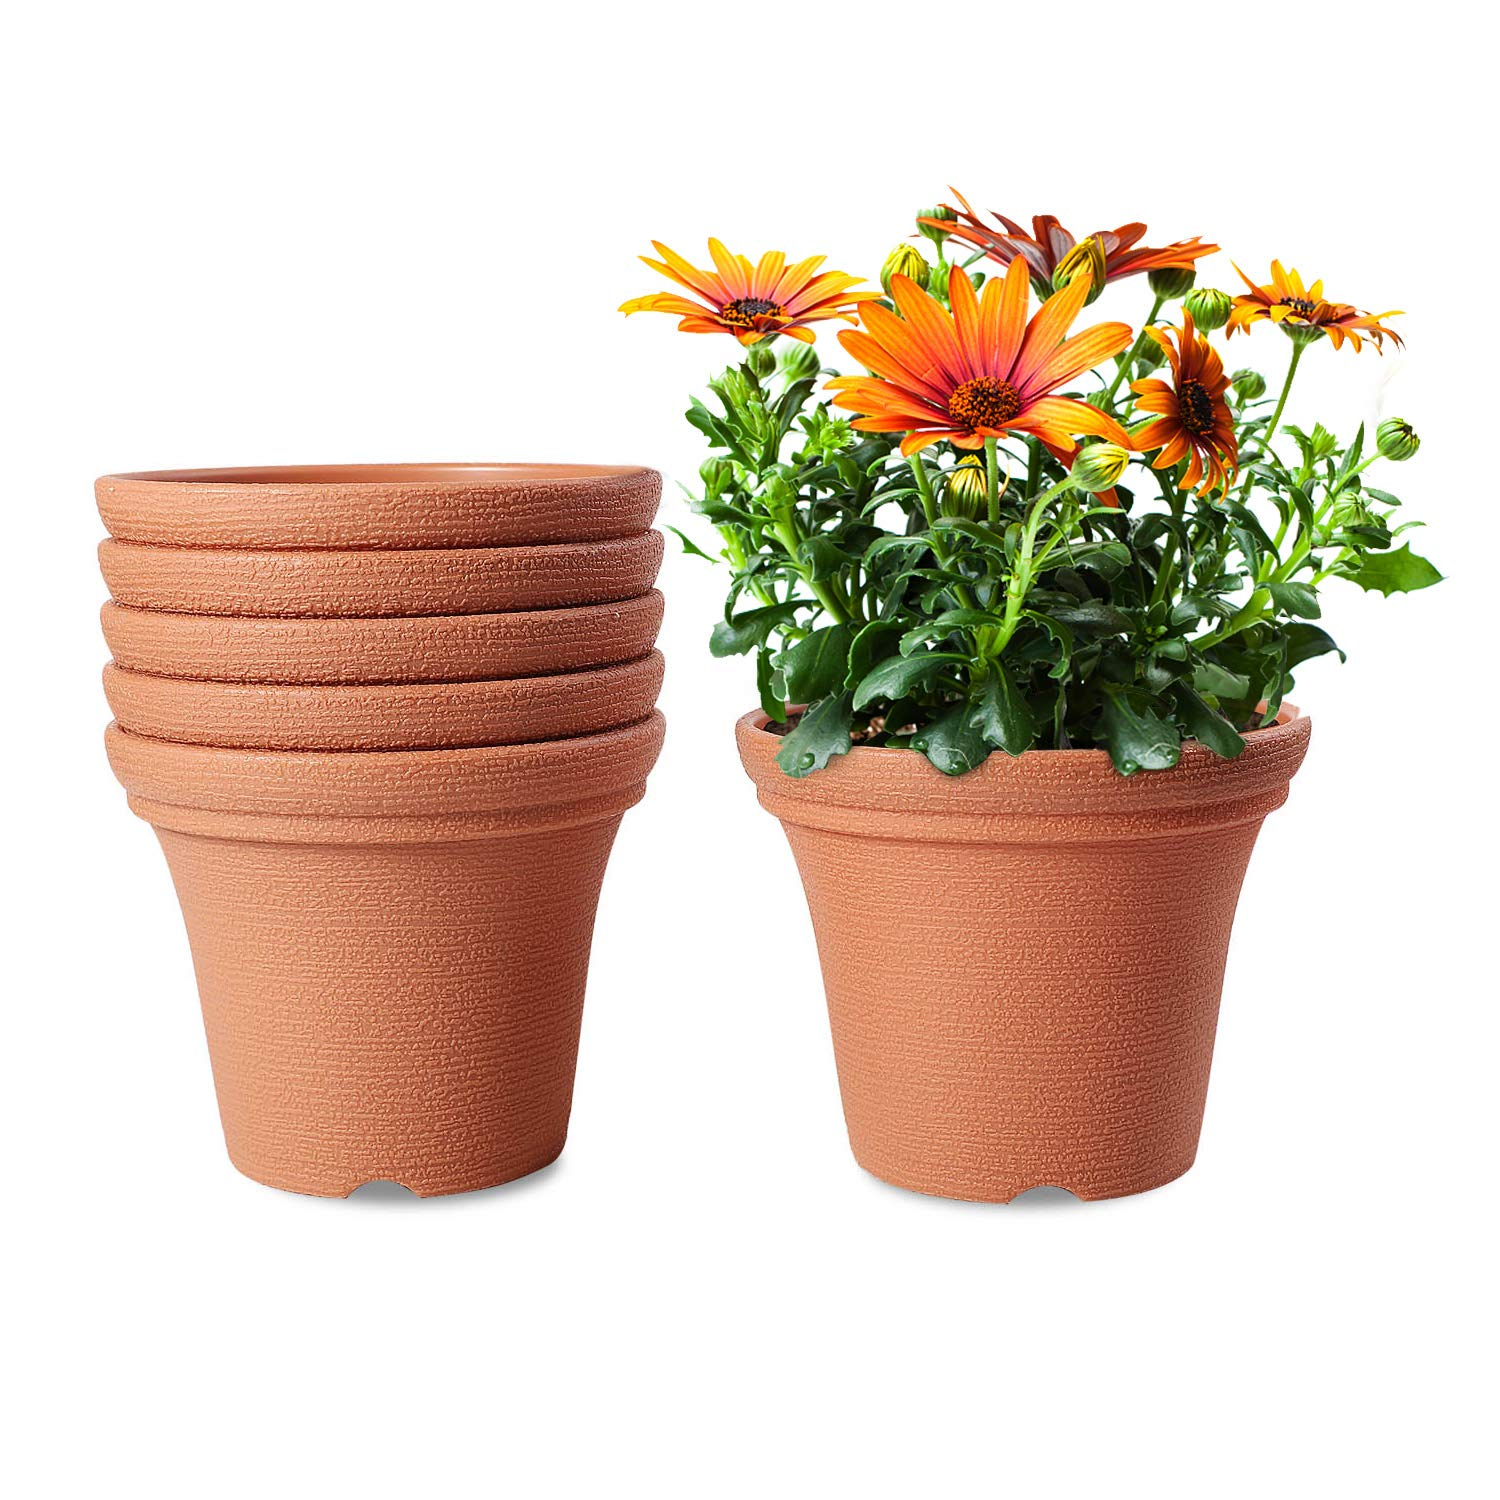 T4U Plastic Garden Flower Planter Pots with Faux Clay Finish 6 Inch Red Set of 6, Round Indoor Outdoor Plant Pots Containers for Herb, Orchid, Aloe Plants Home Garden Office Decoration